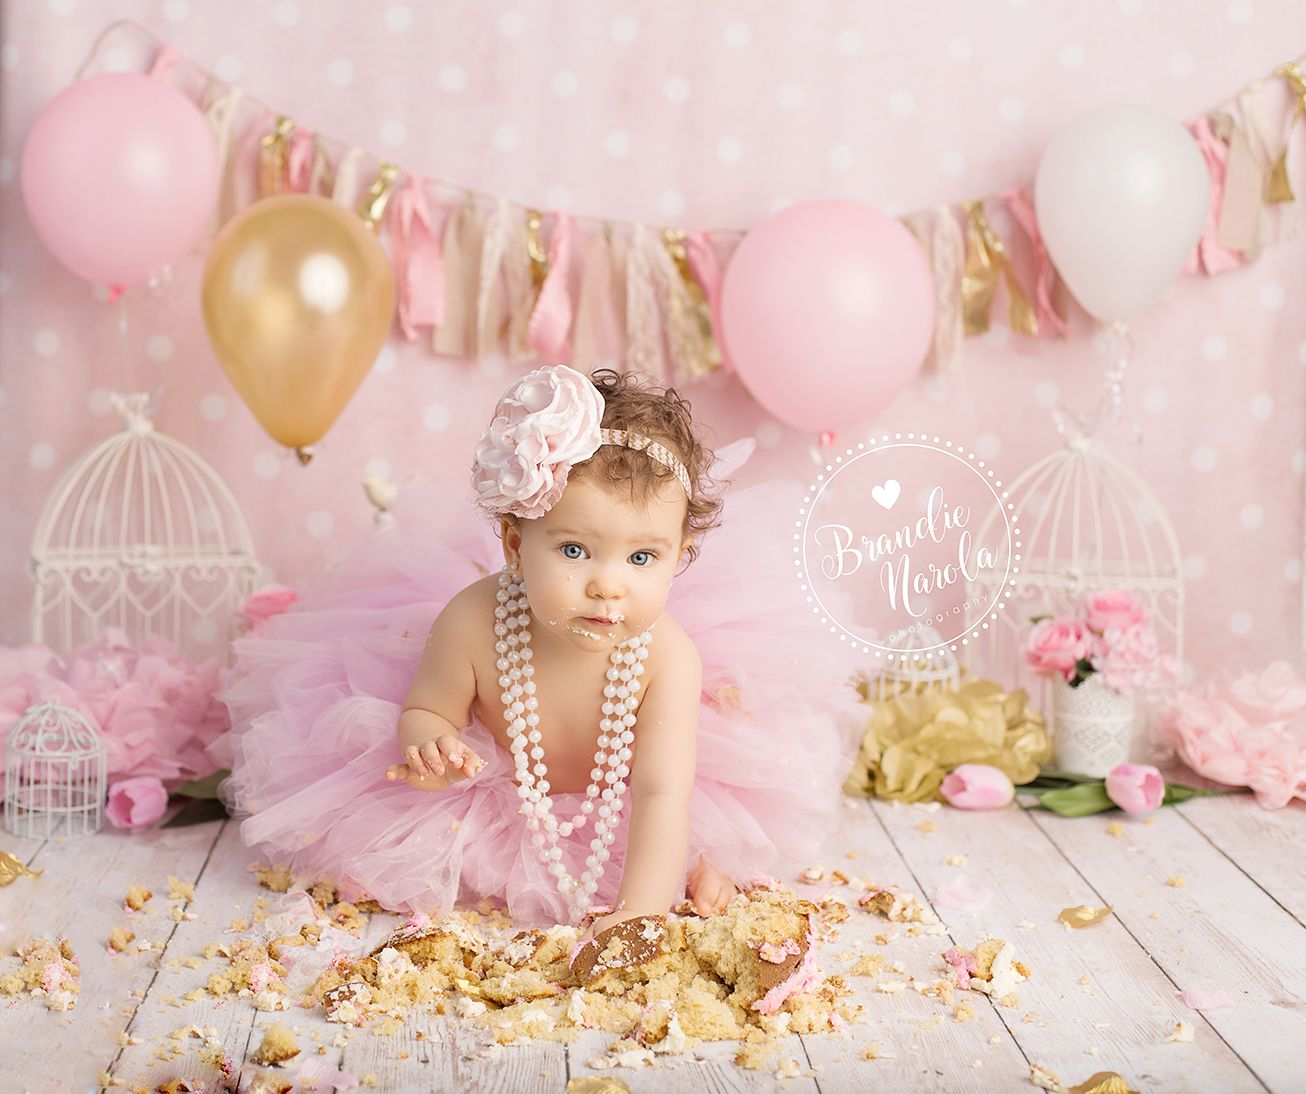 Cake smash girl cake smash pink and gold cake smash for Baby girl birthday decoration pictures